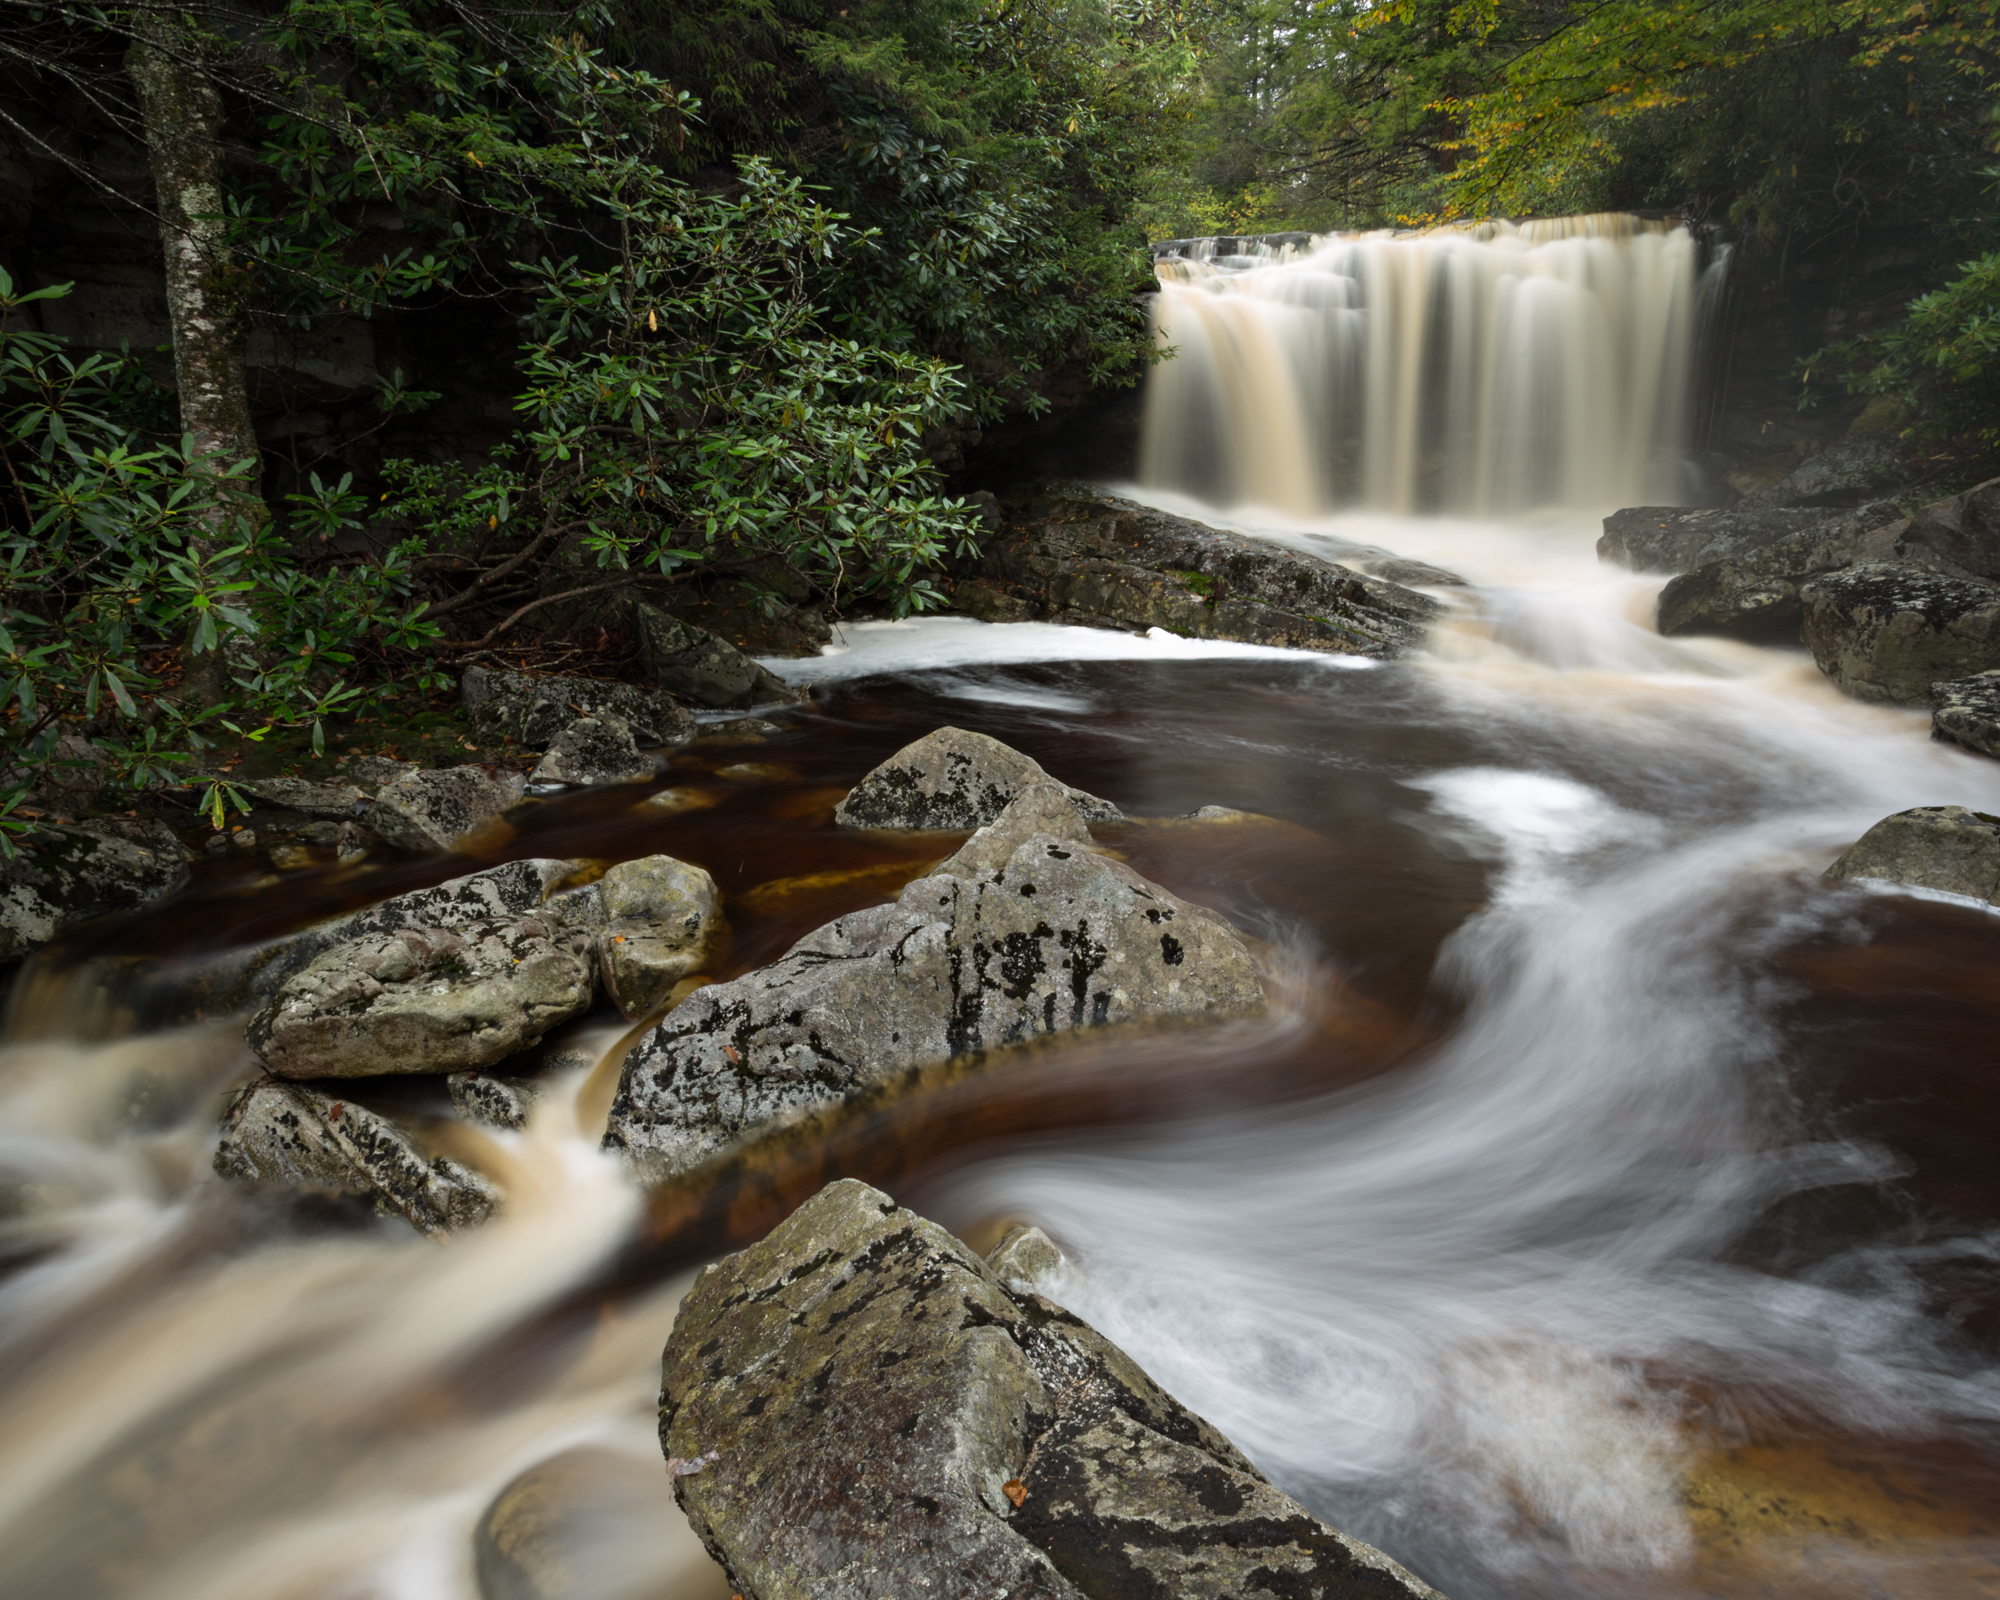 27. Big Run, Monongahela National Forest, West Virginia